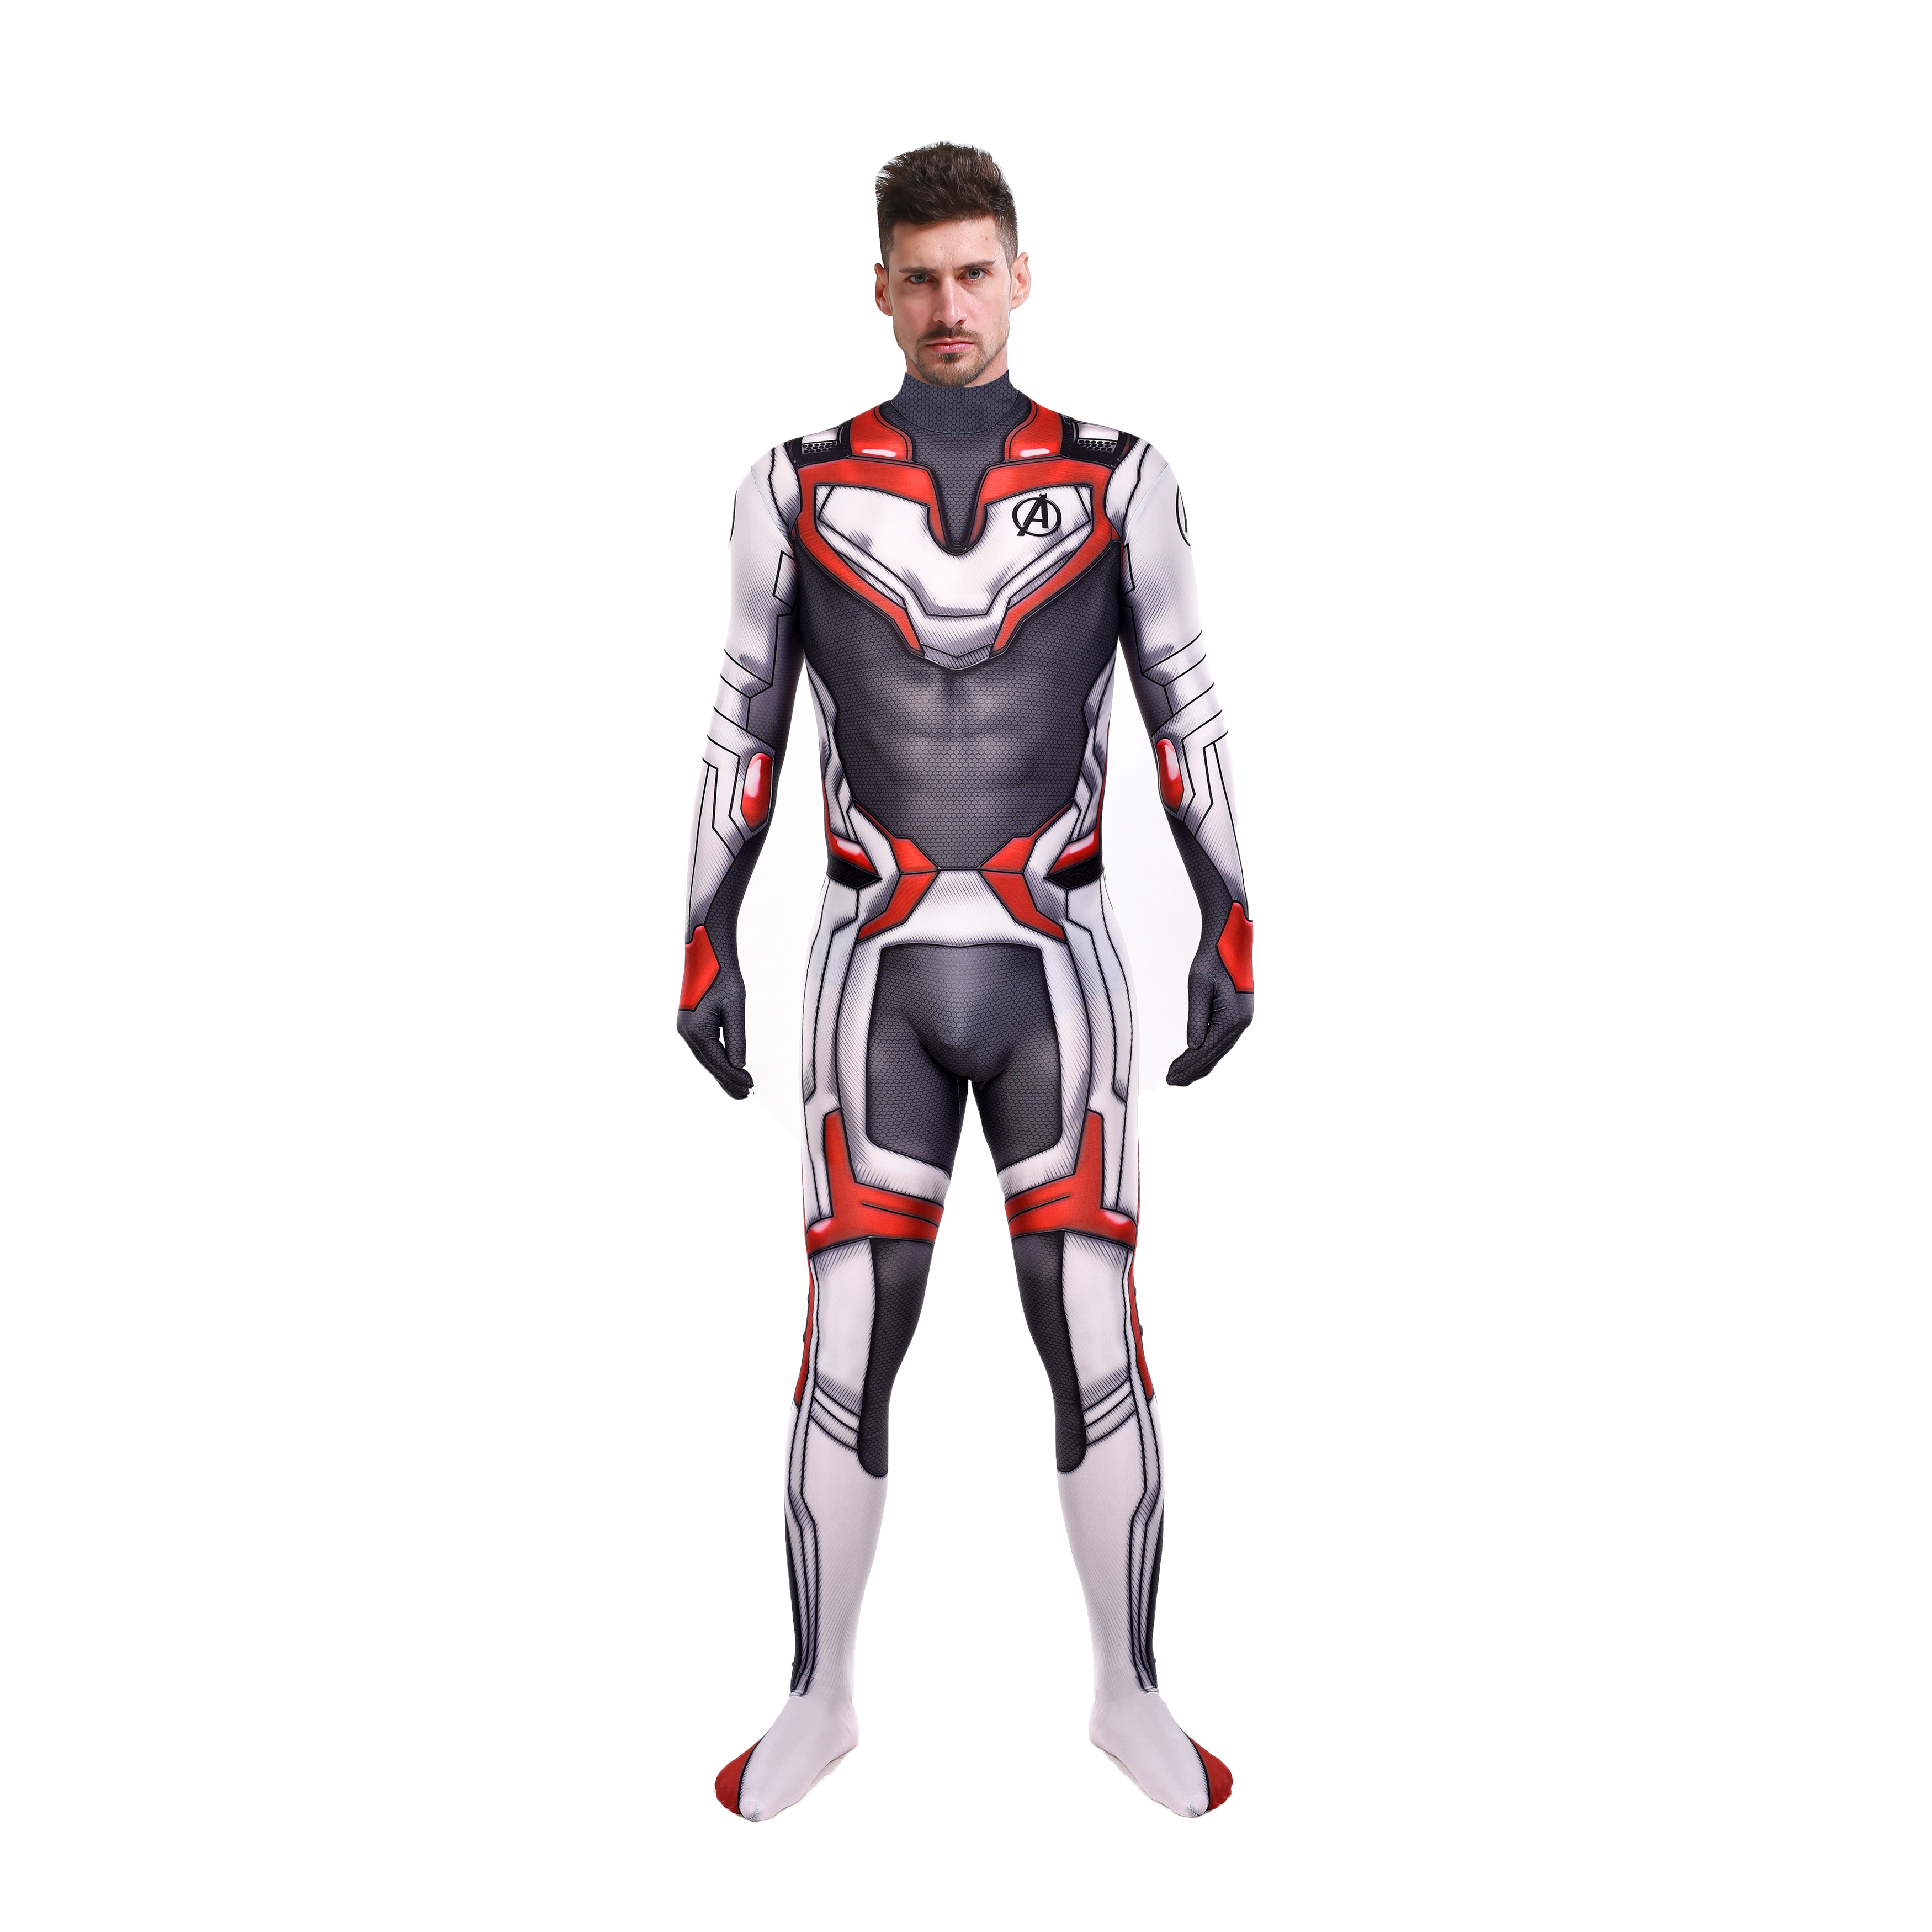 High Quality Avengers 4 Cosplay Costumes 3D Print Lycra 2019 Avengers Endgame film Quantum Realm Team Bodysuits